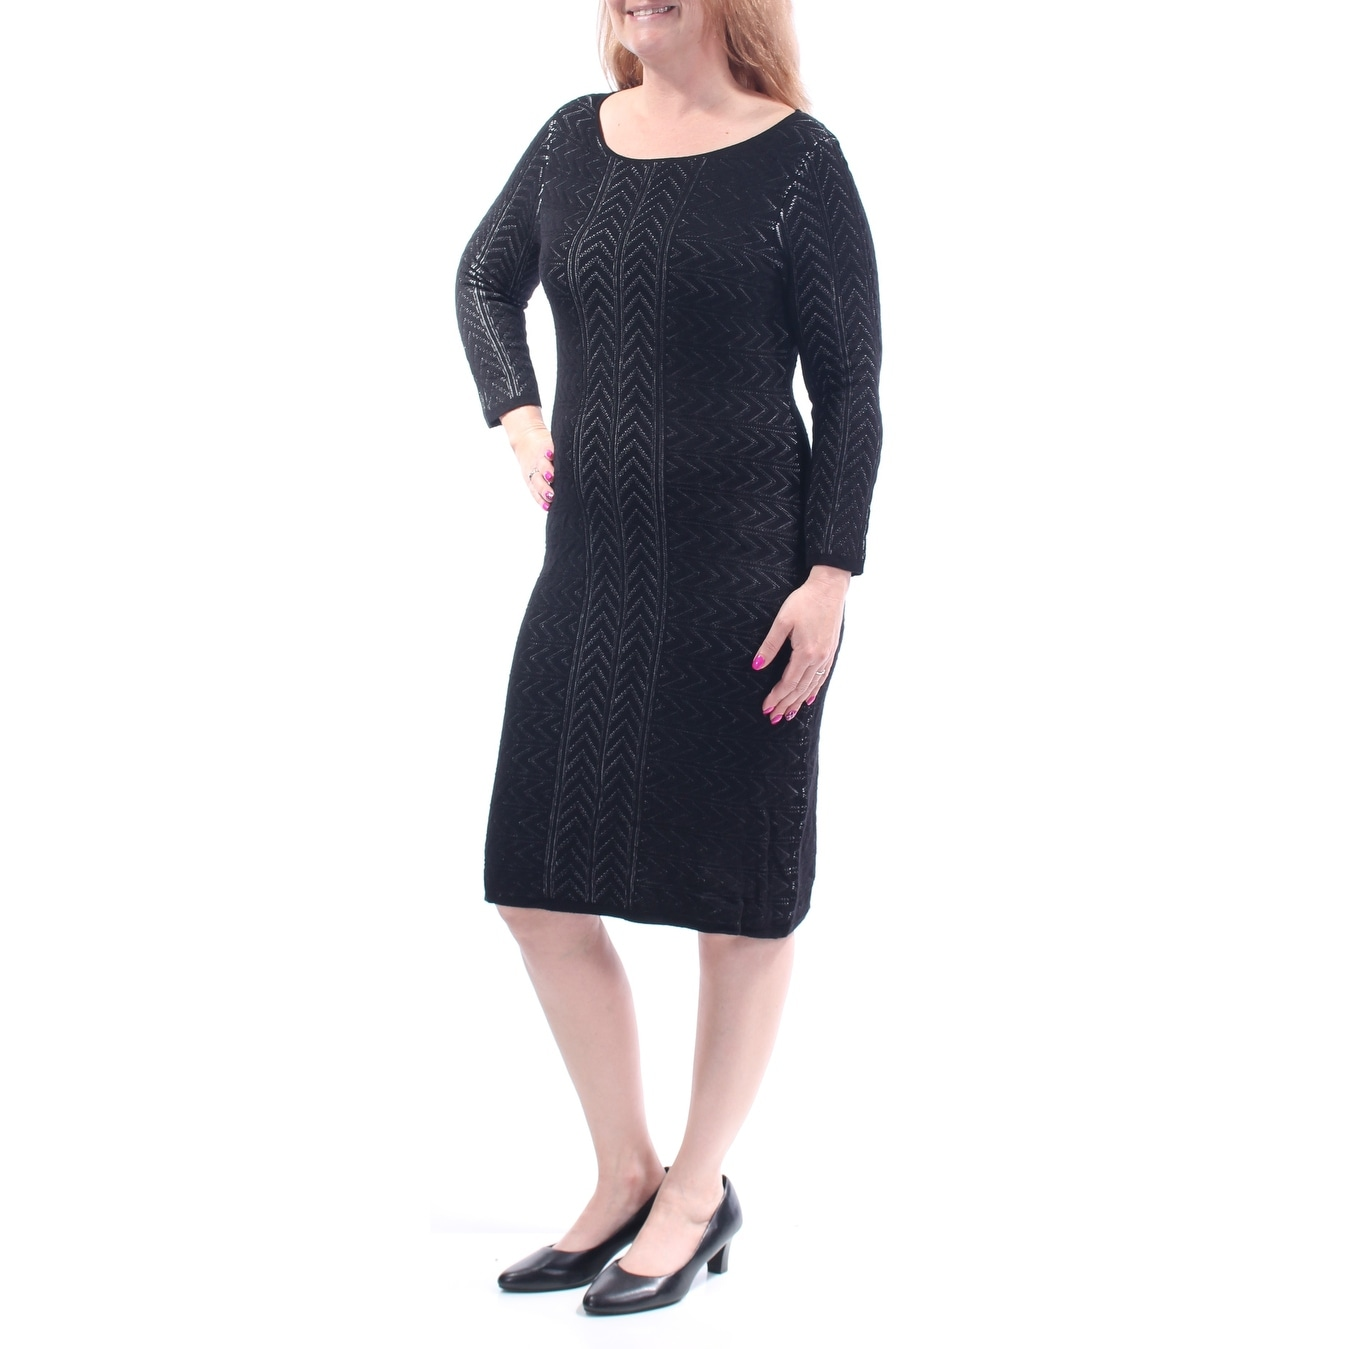 adf4fb85 Shop Womens Black Long Sleeve Knee Length Sheath Dress Size: L - On Sale -  Free Shipping On Orders Over $45 - Overstock.com - 23450974